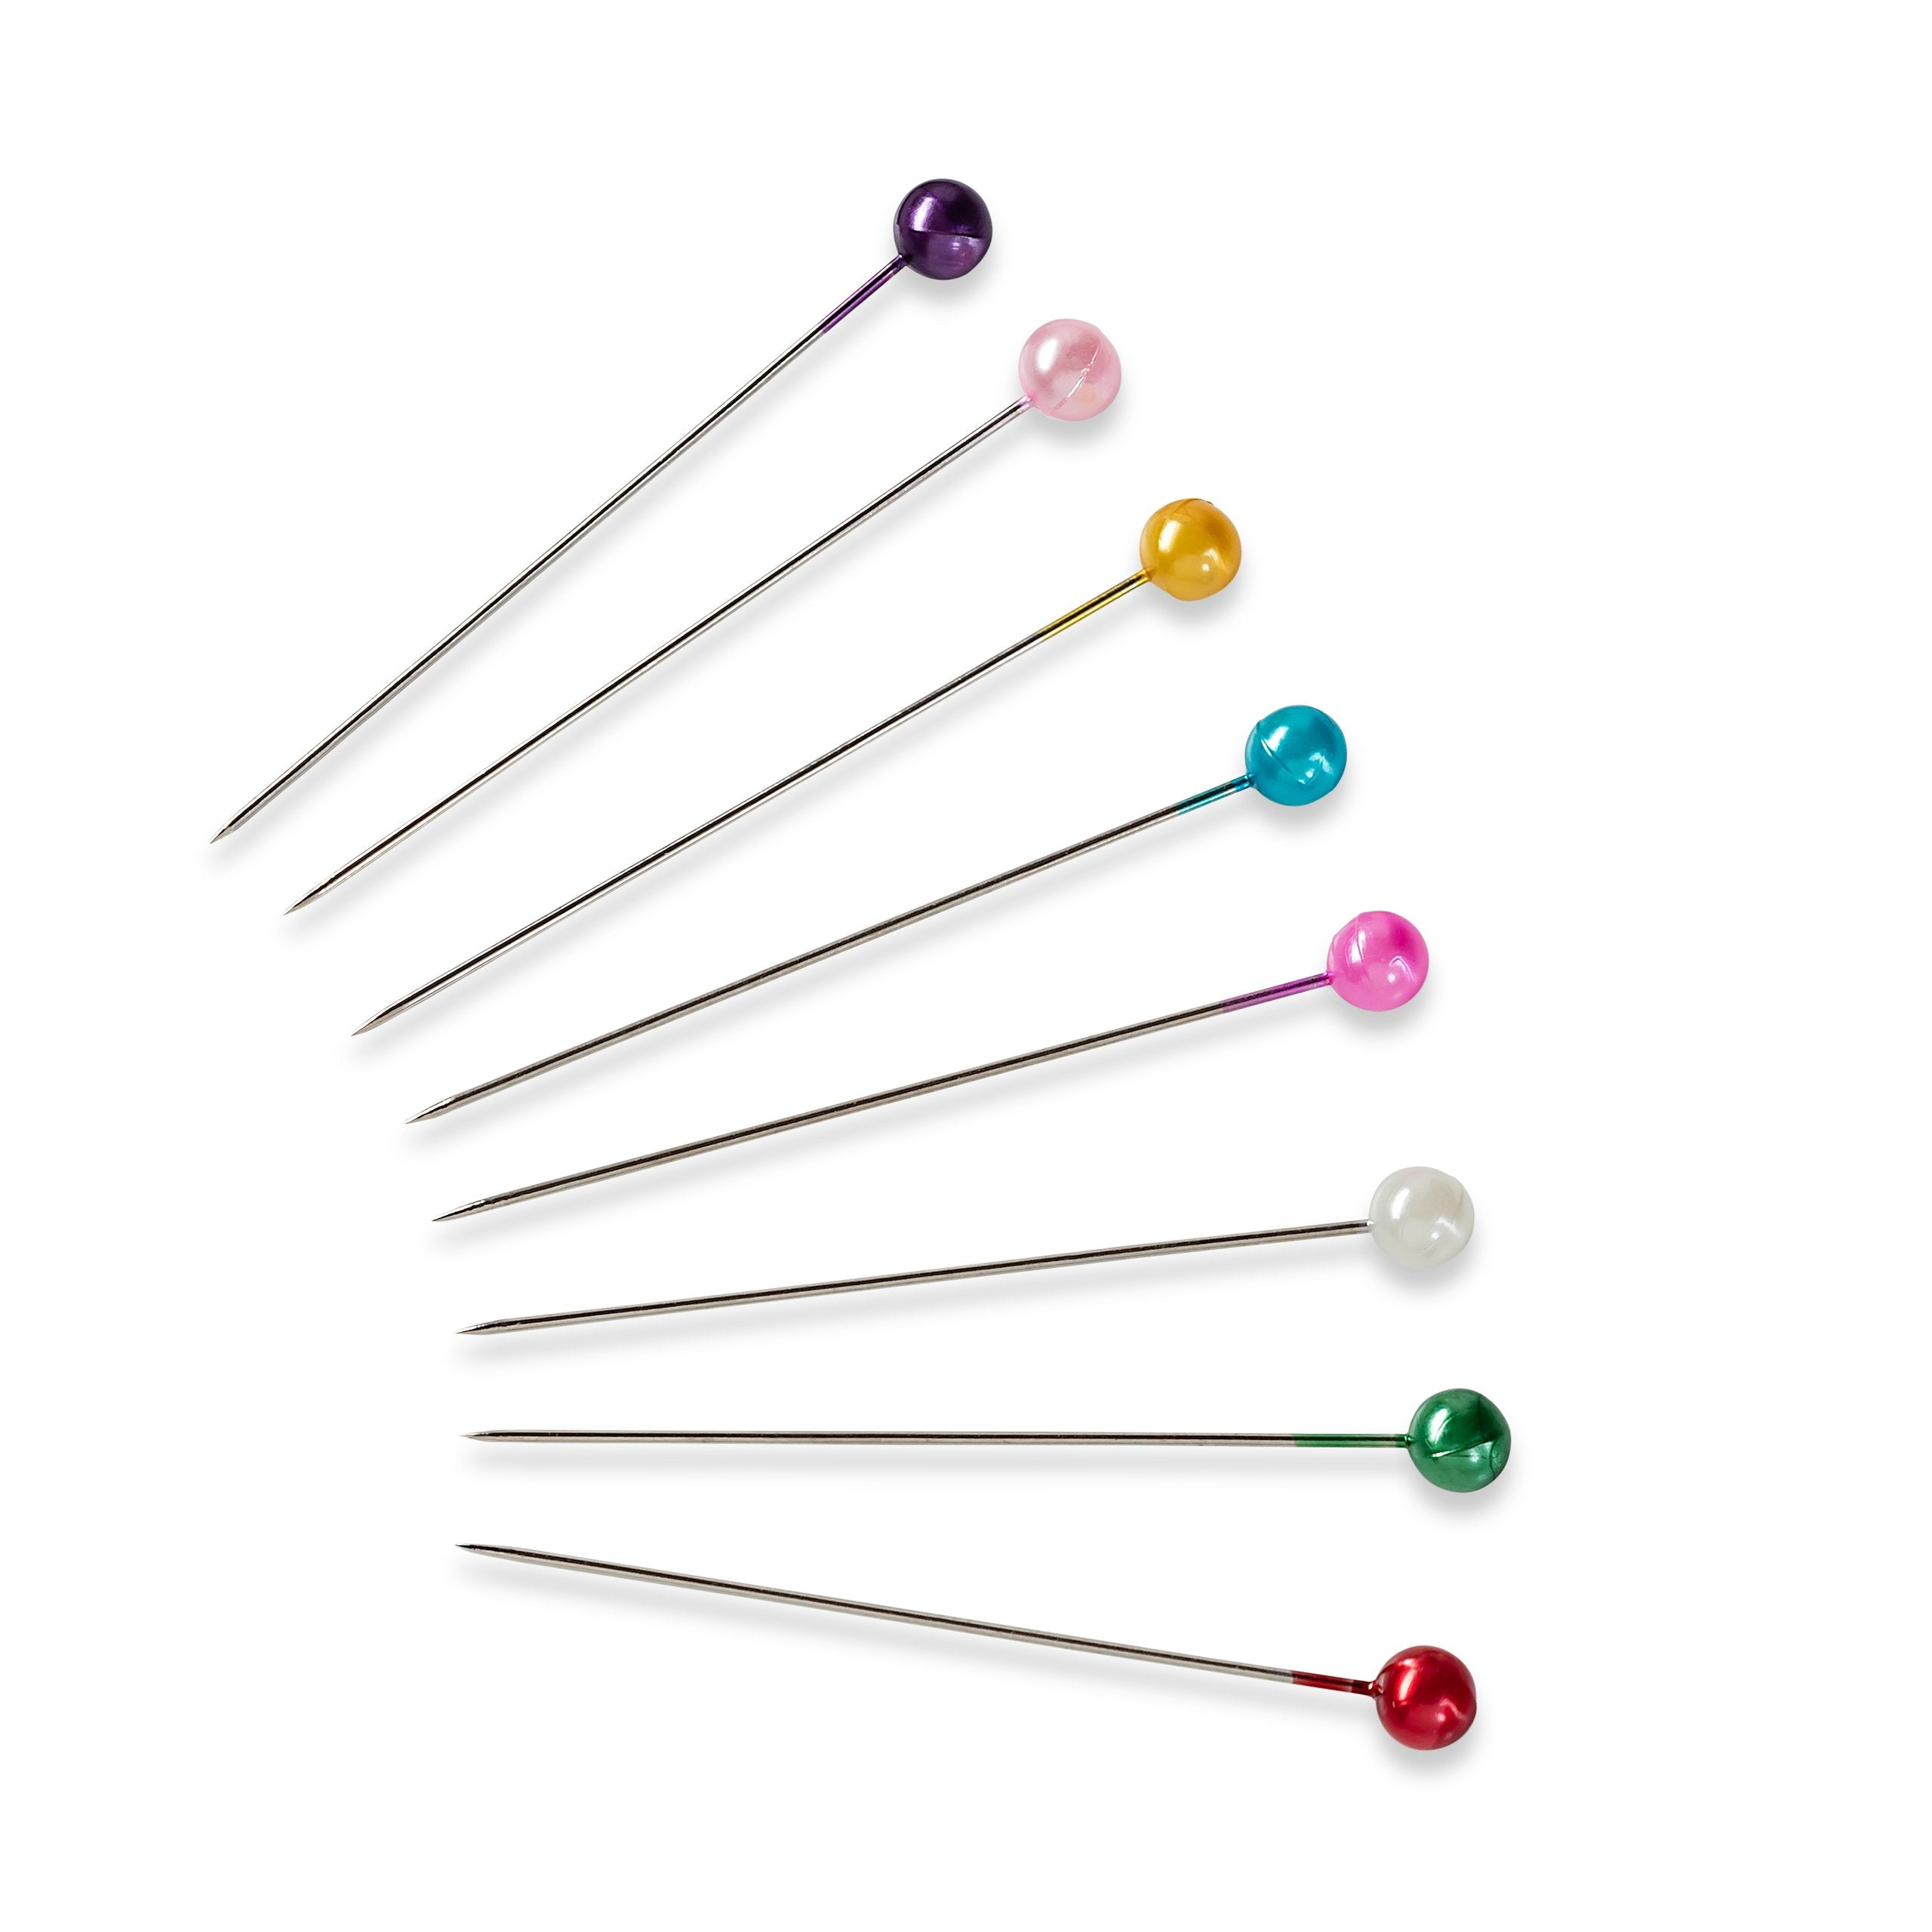 quality dressmaking pins with bright 'pearl' heads